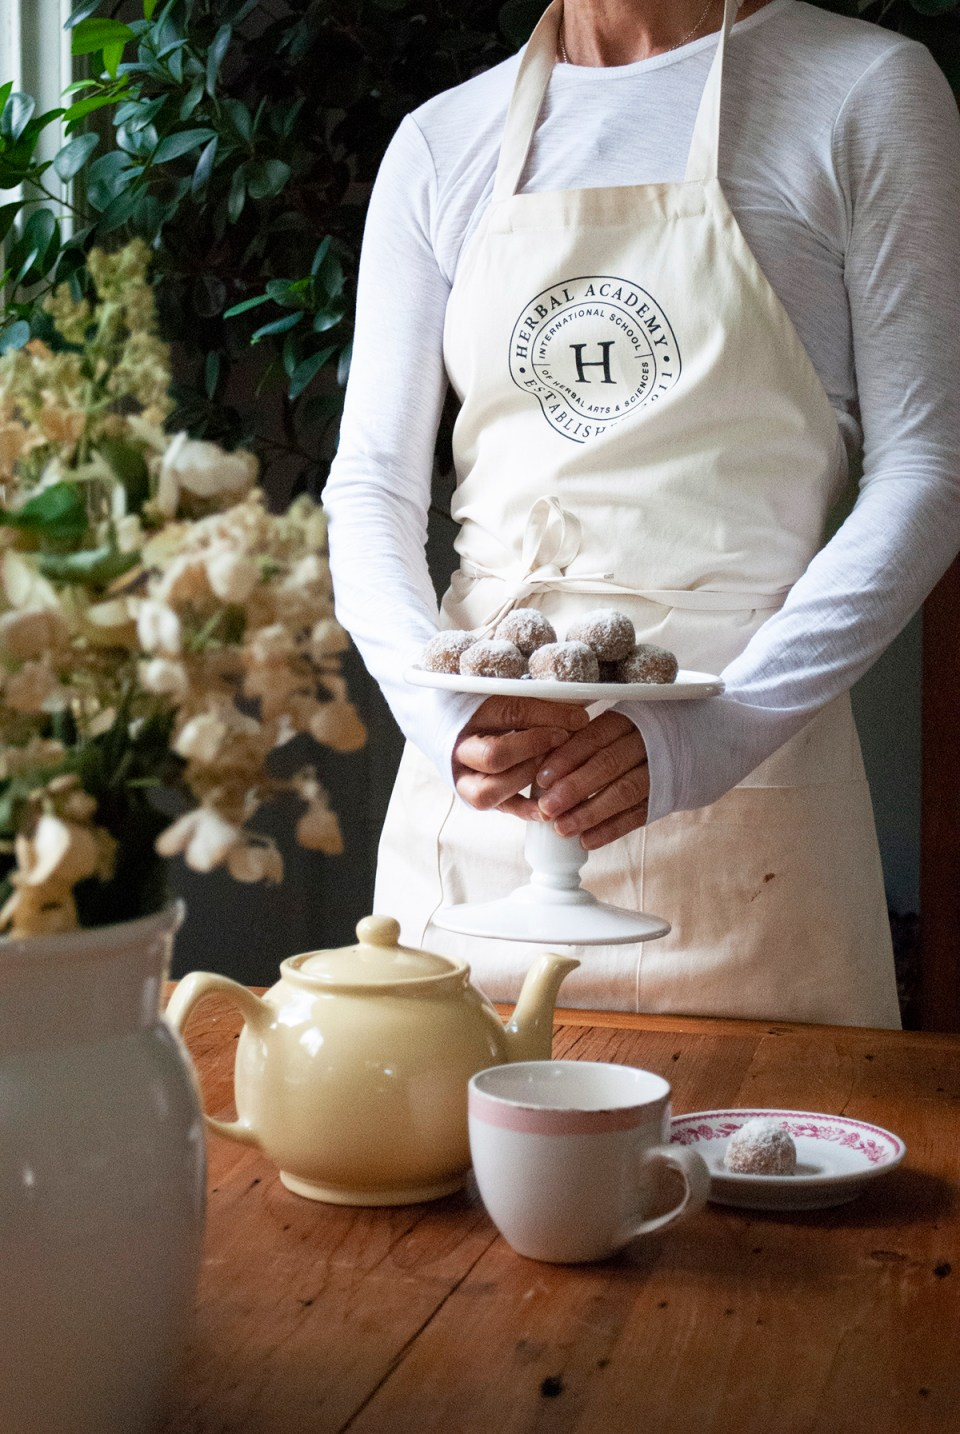 The Beginner's Guide To Ashwagandha | Herbal Academy | Ashwagandha root is known by a number of names, and its usages are more plentiful than its aliases.Learn about using ashwagandha for wellness in this post.